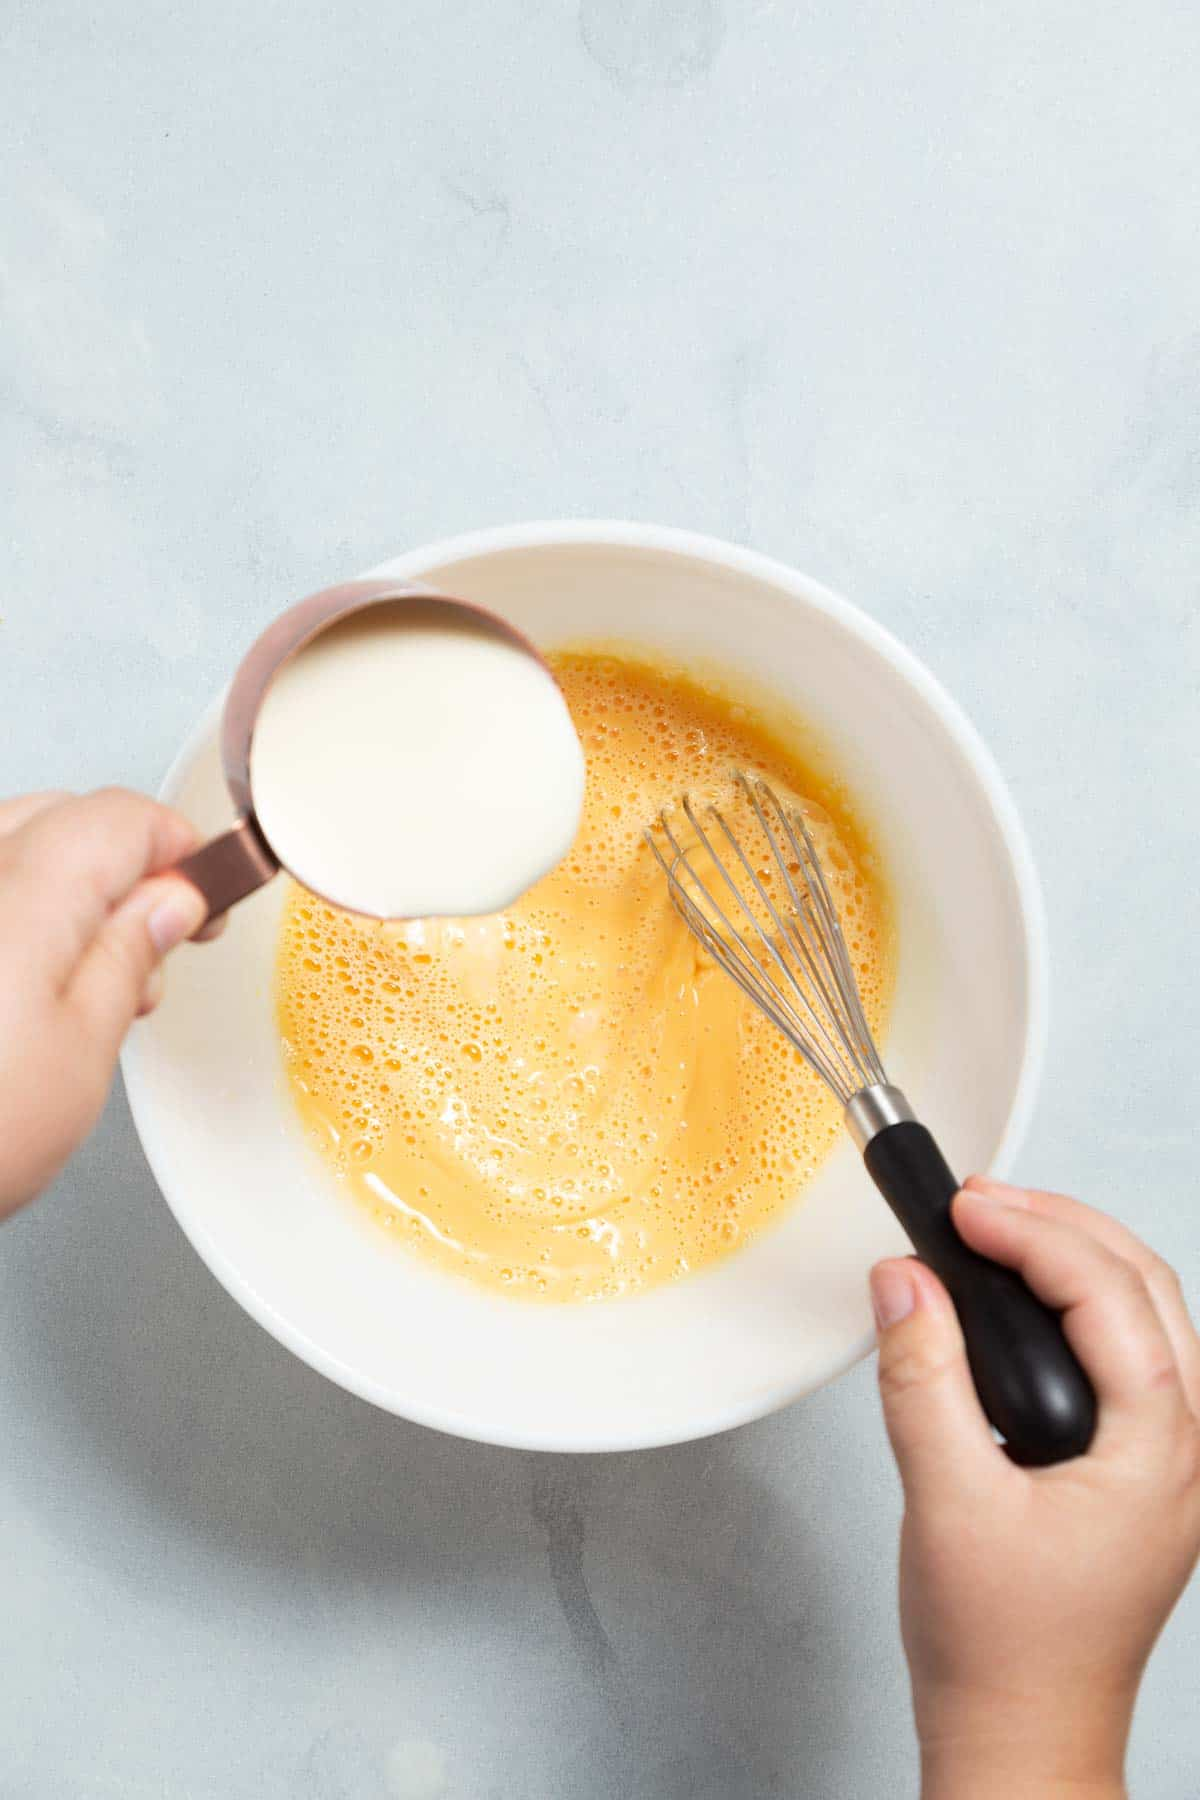 Whisking white sugar into egg yolks in a white mixing bowl